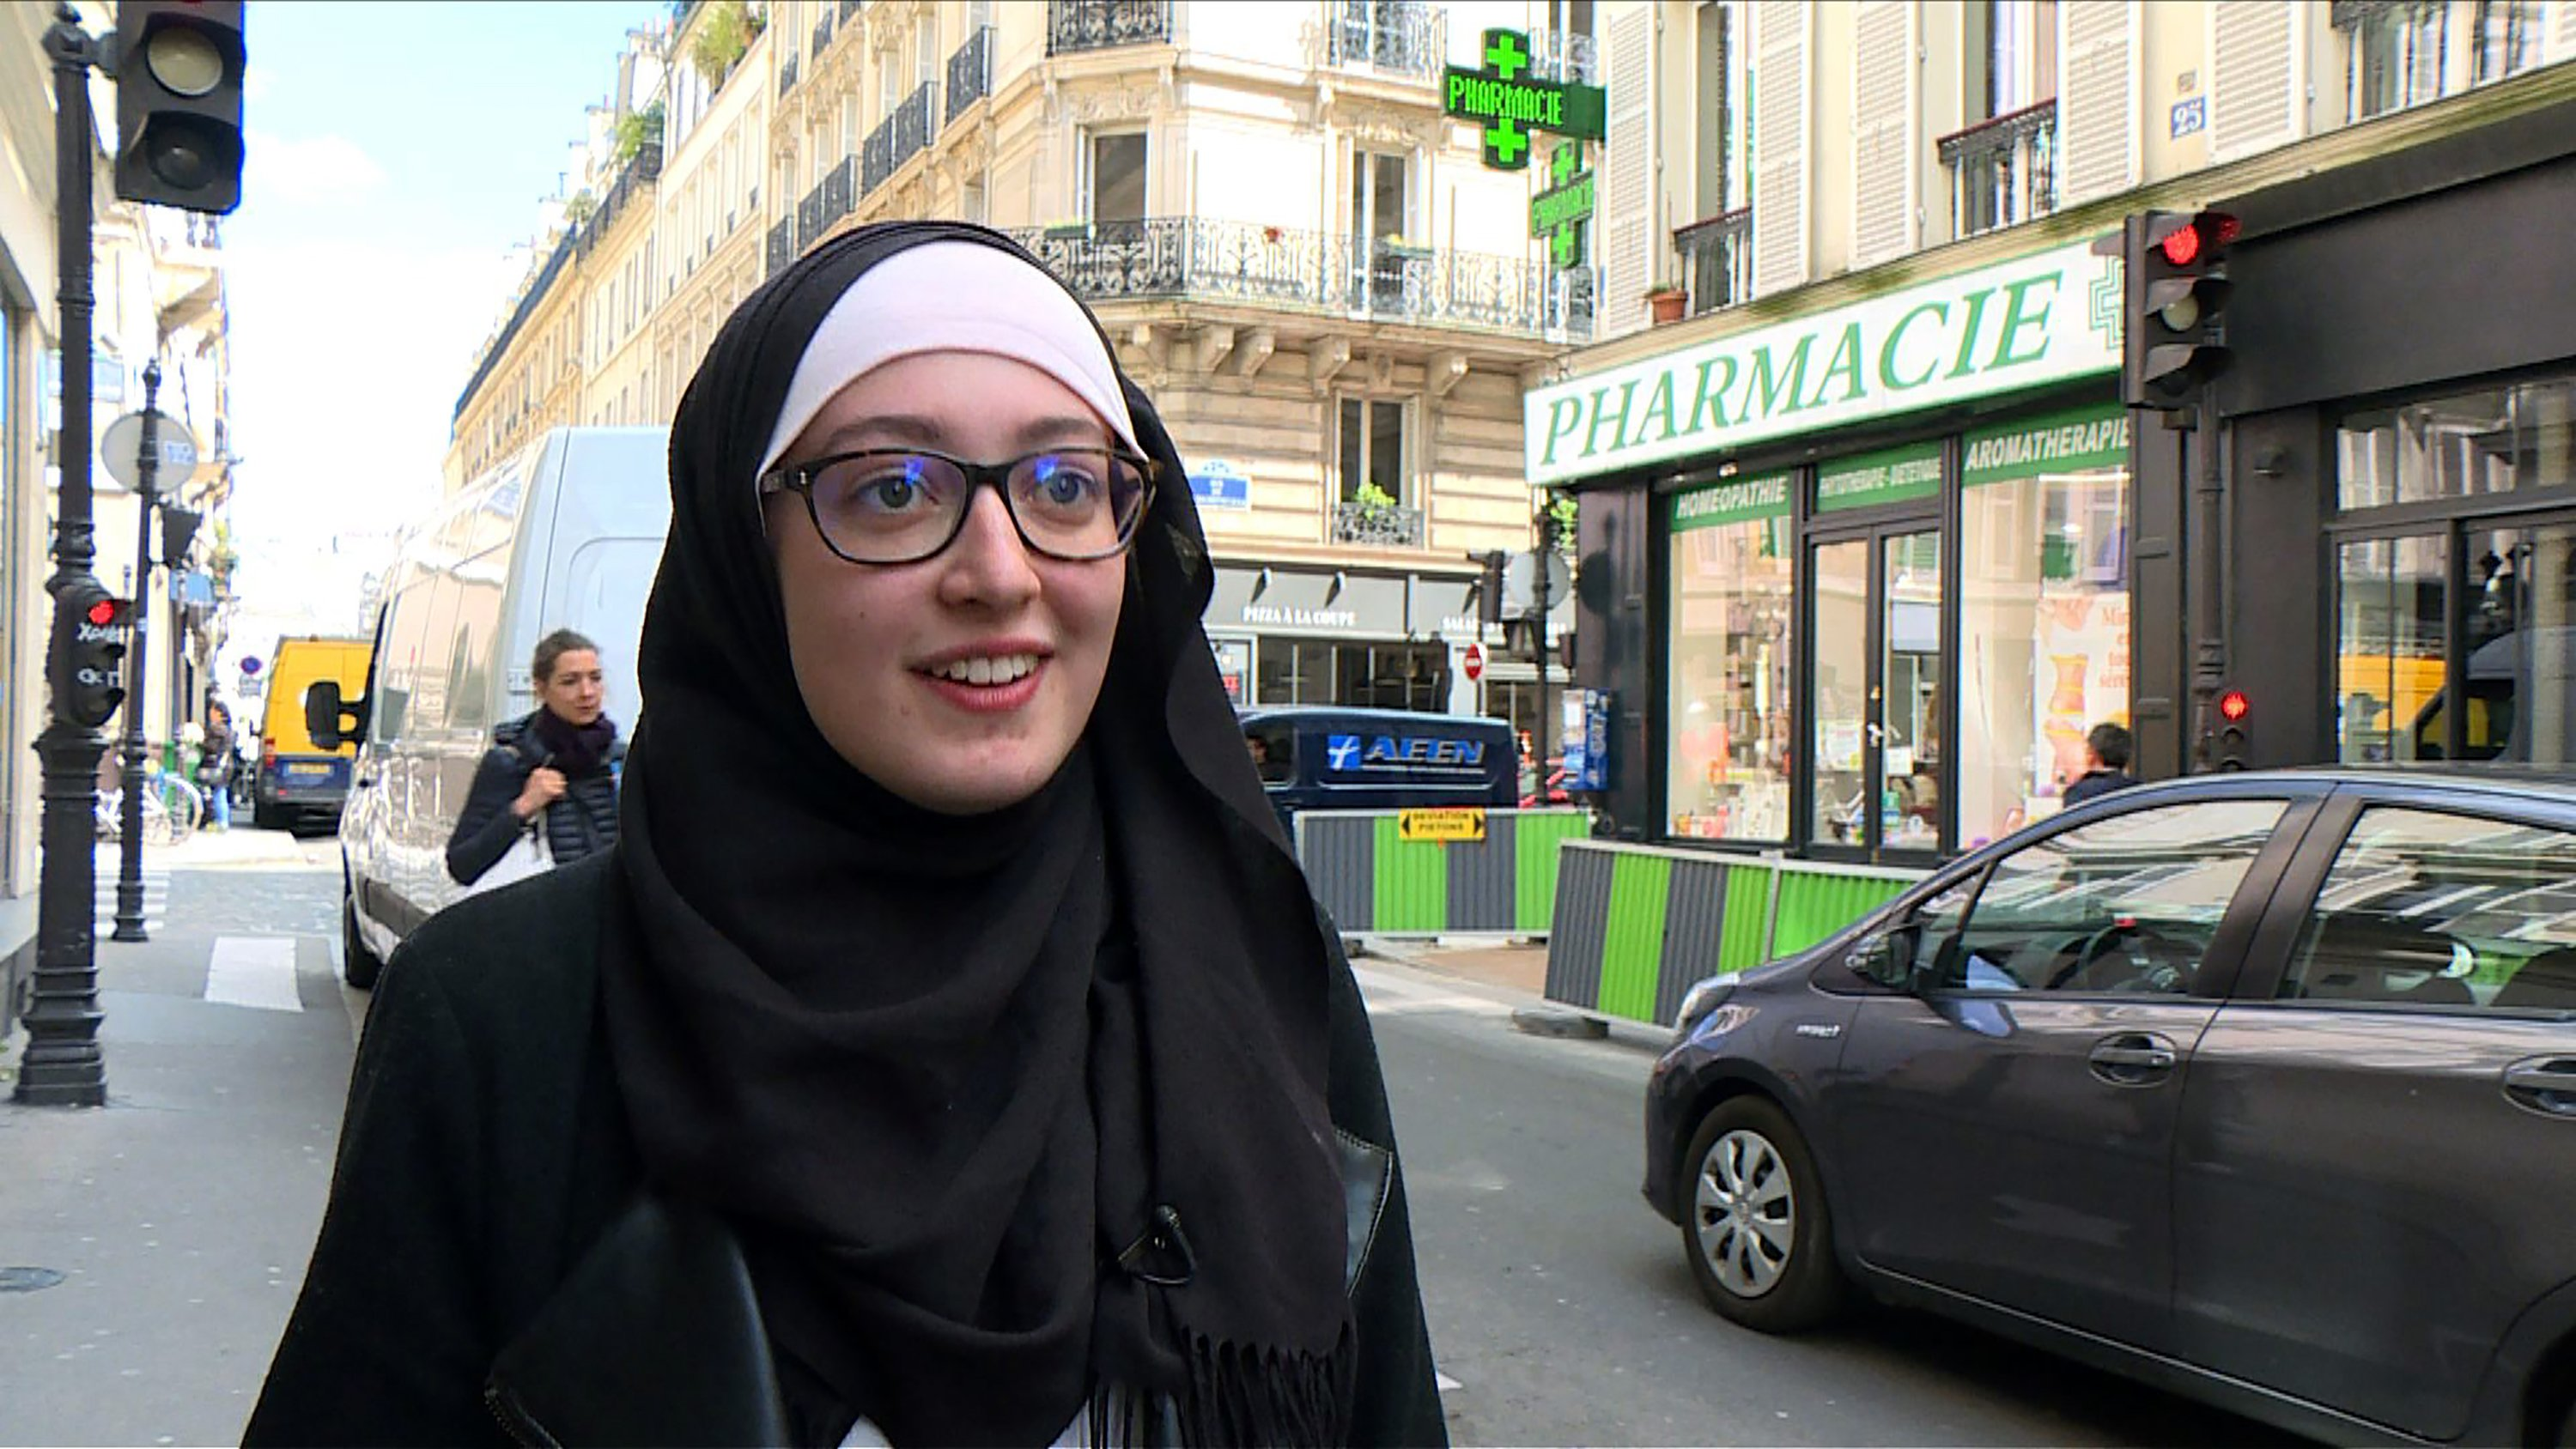 French MP leads assembly walkout over union representative wearing hijab